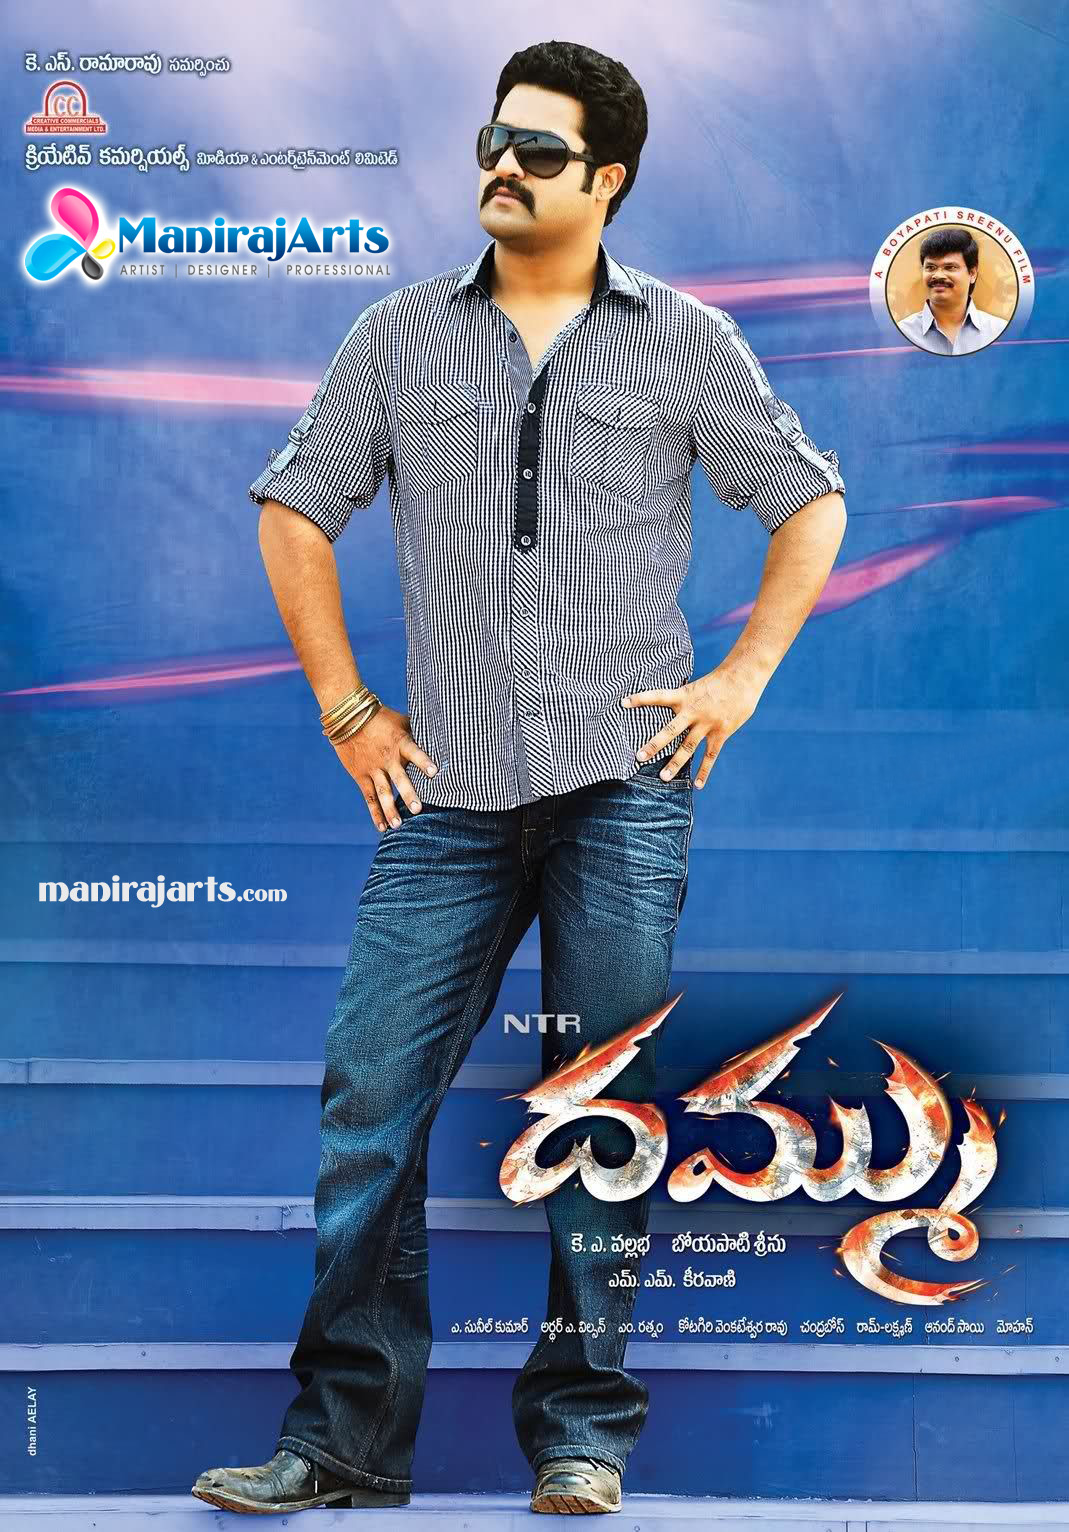 NTR Dammu Movie Wallpapers and